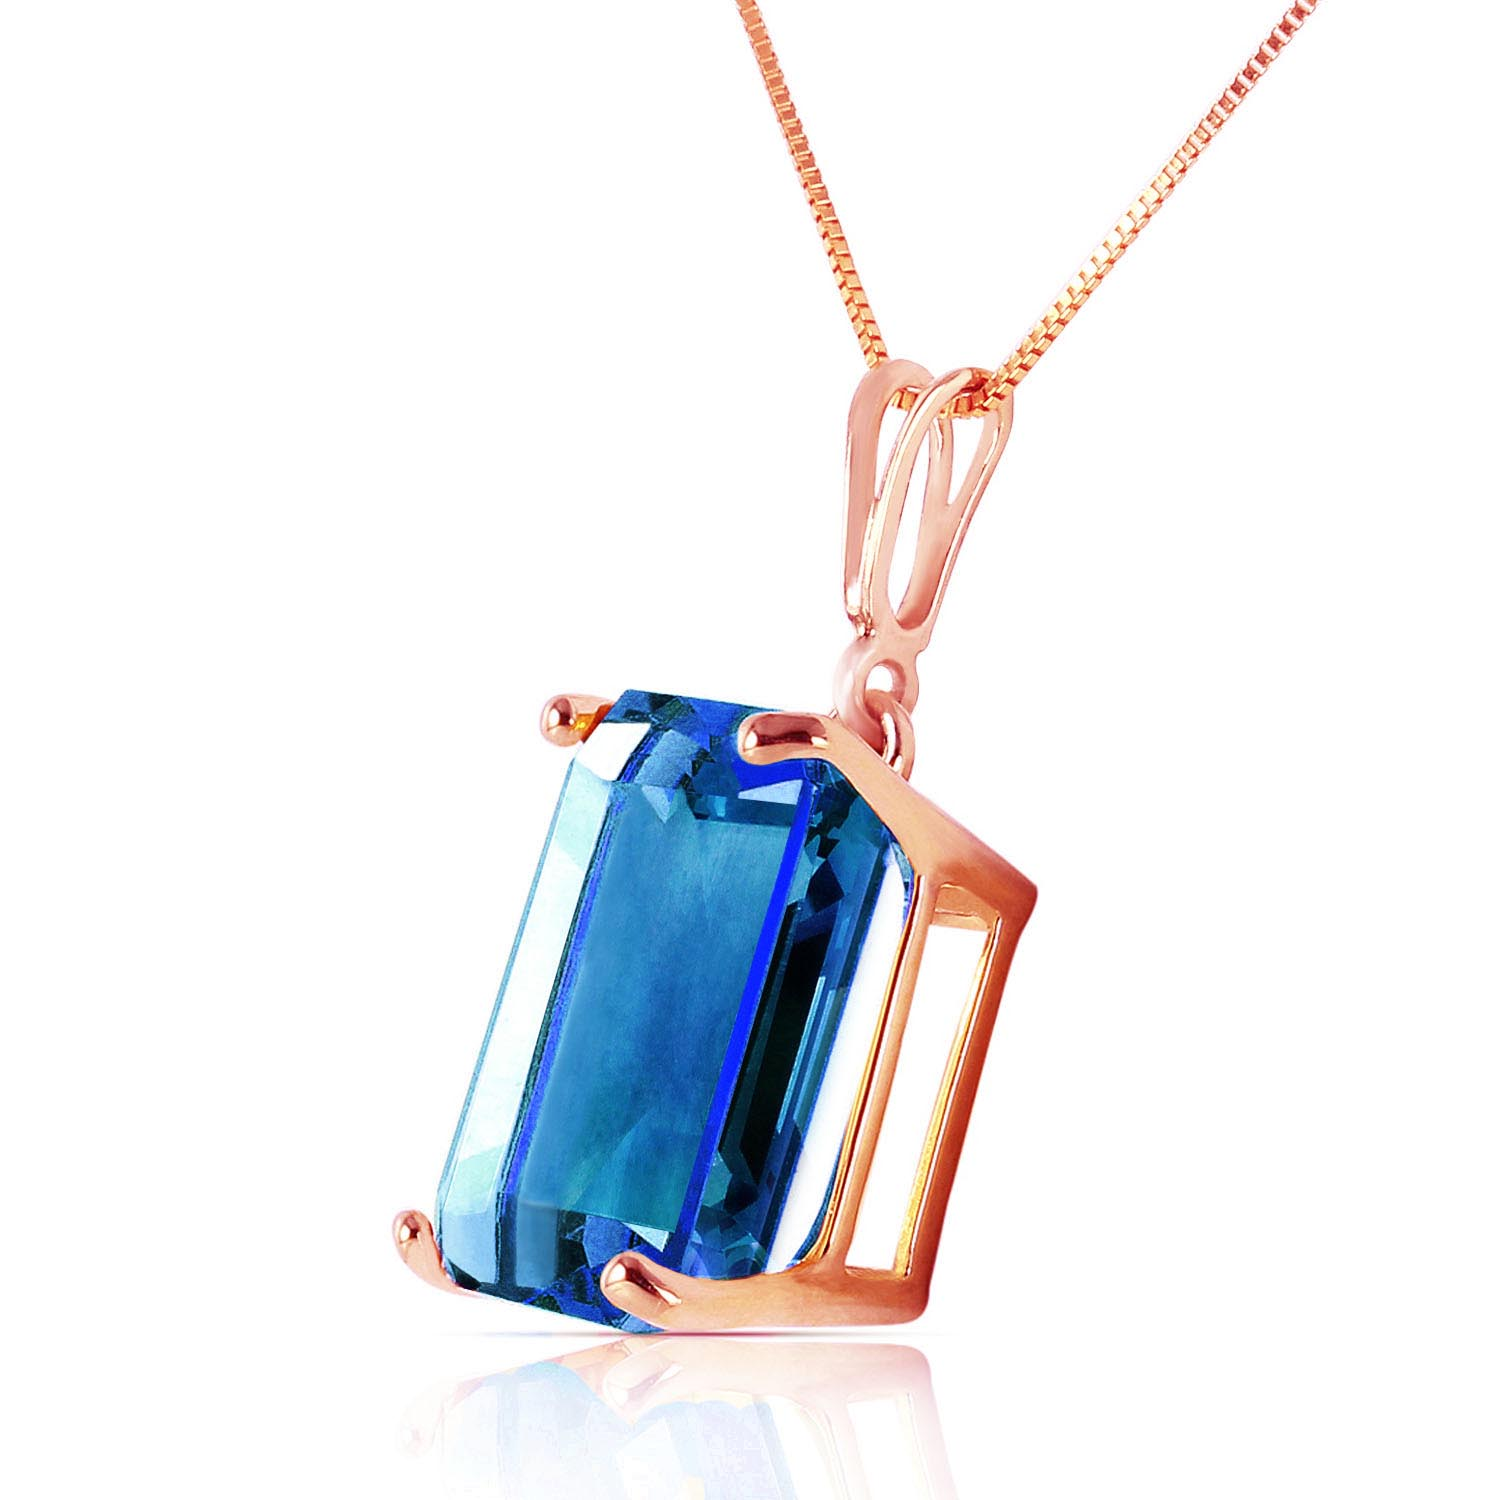 Blue Topaz Pendant Necklace 7.0ct in 9ct Rose Gold